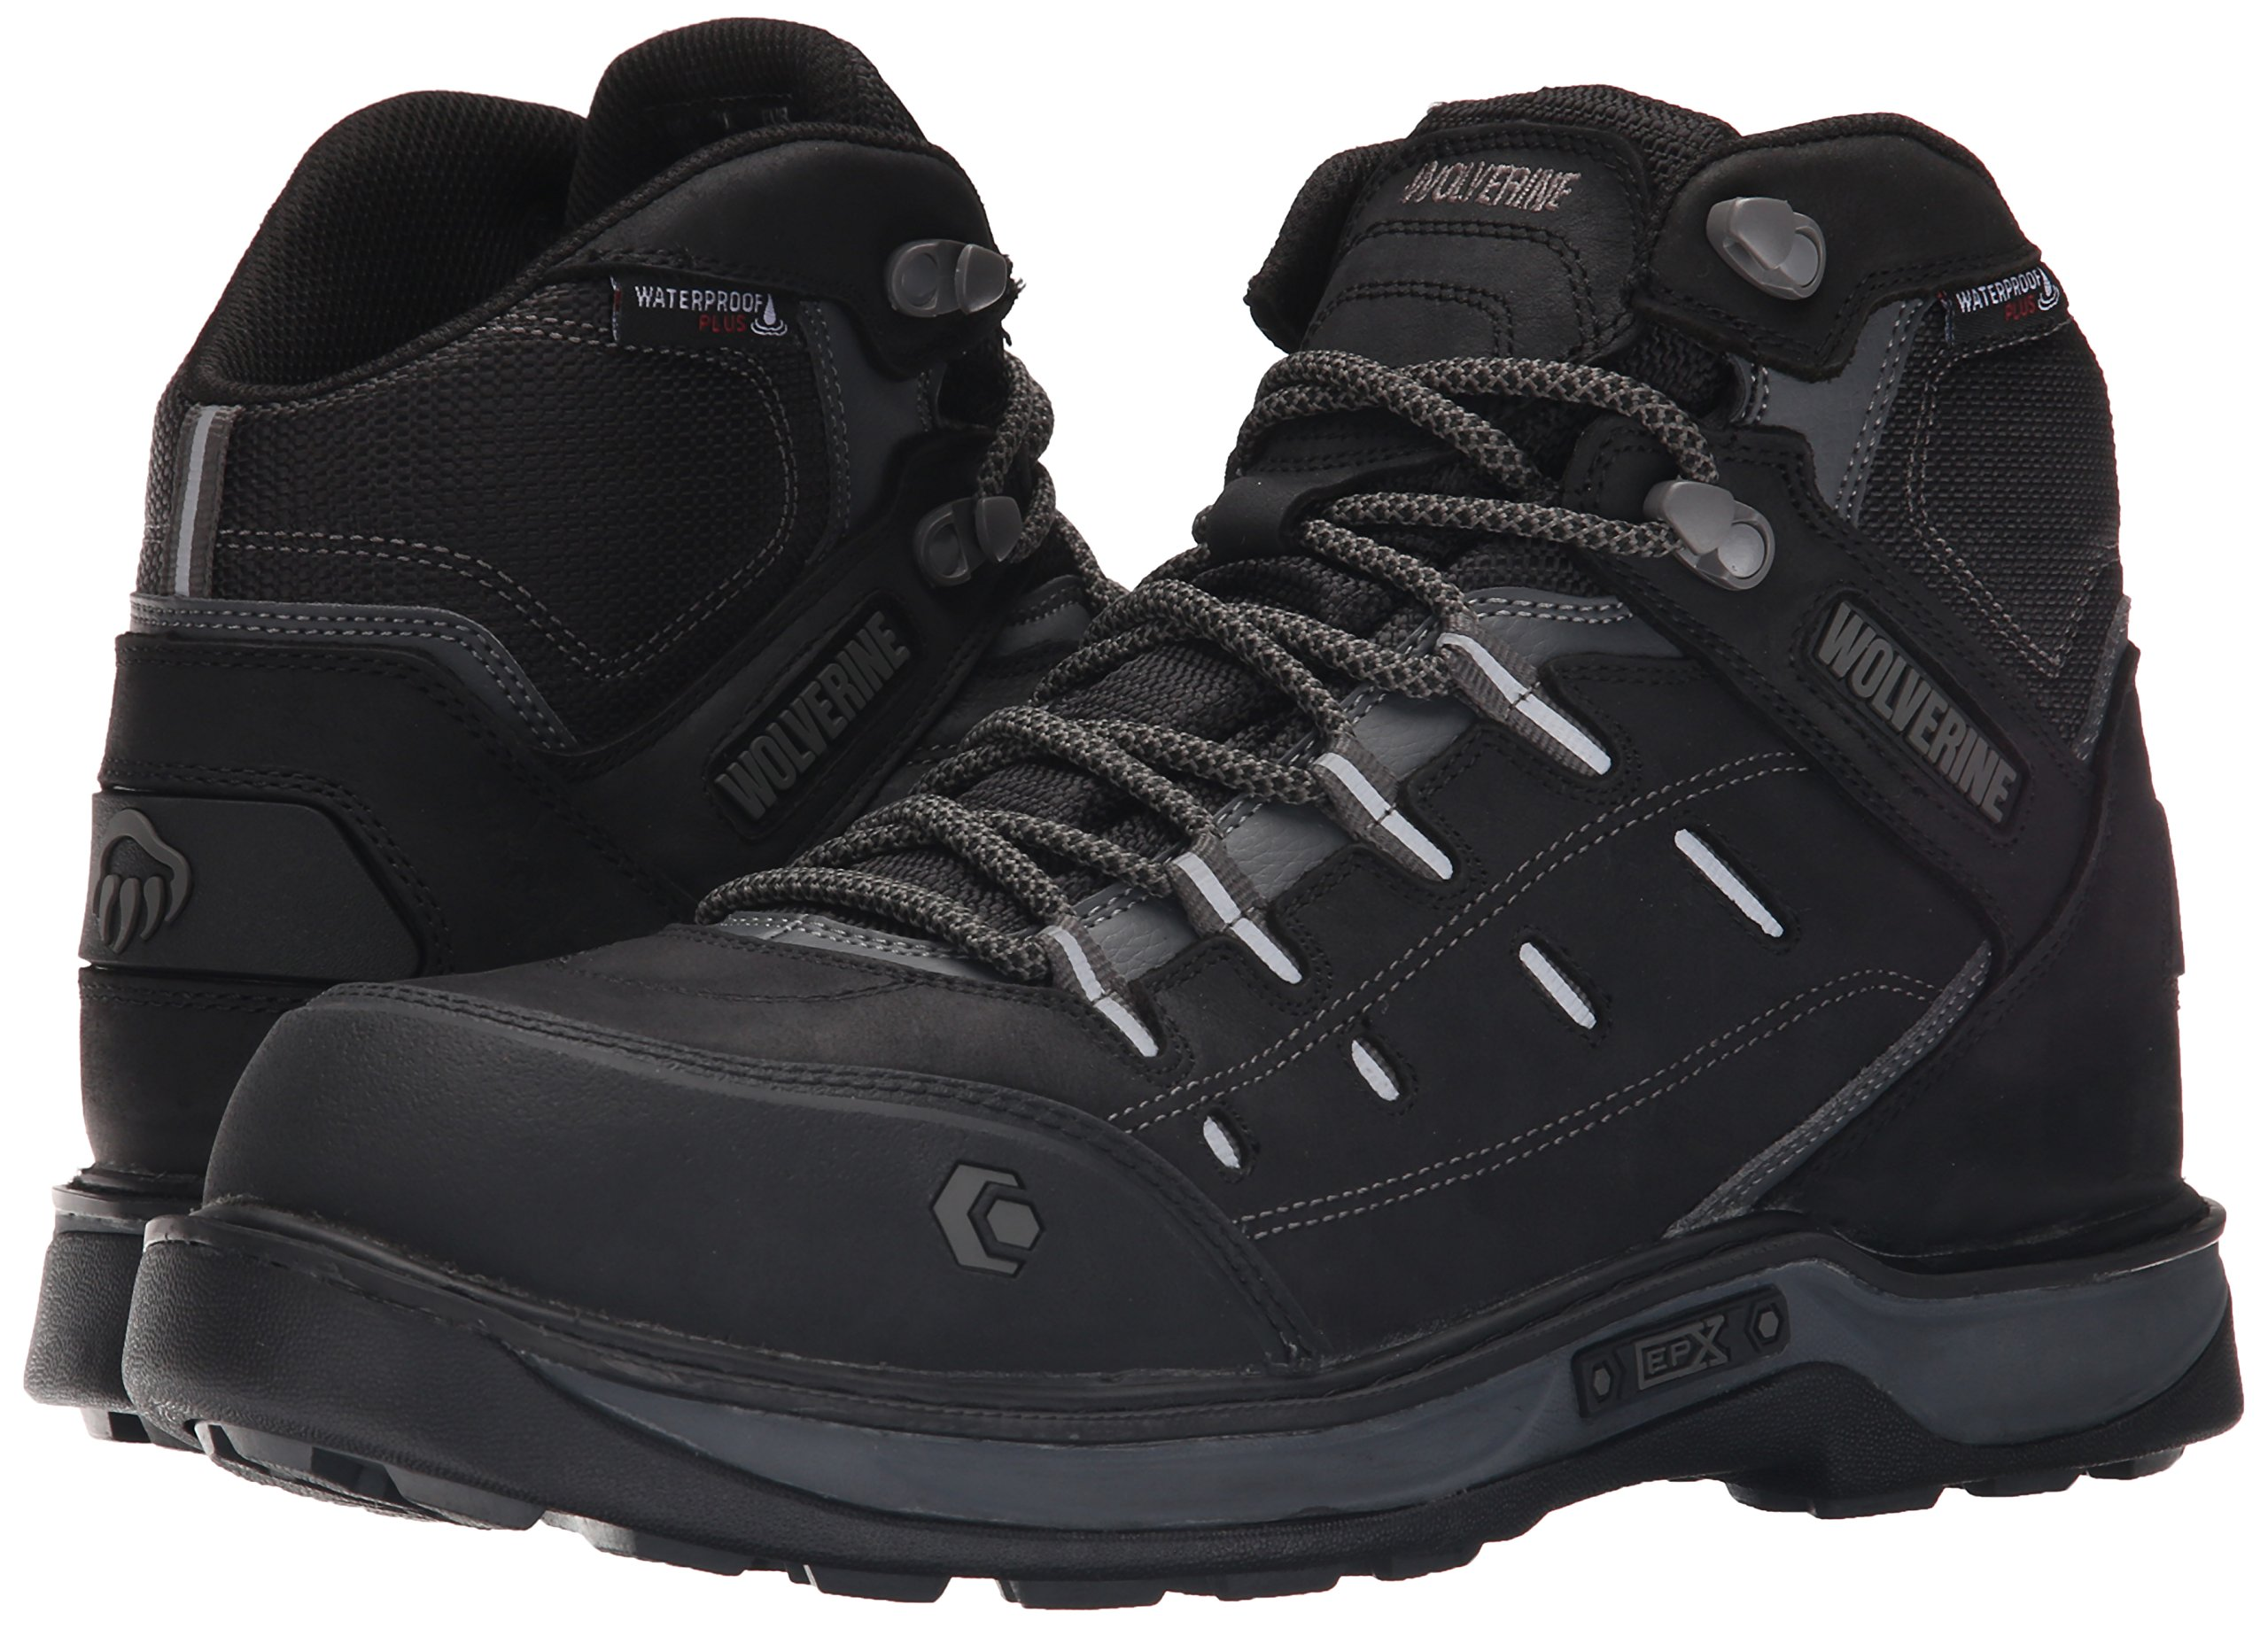 Wolverine Men's Edge LX Nano Toe Work Boot, Black/Grey, 11.5 M US by Wolverine (Image #6)